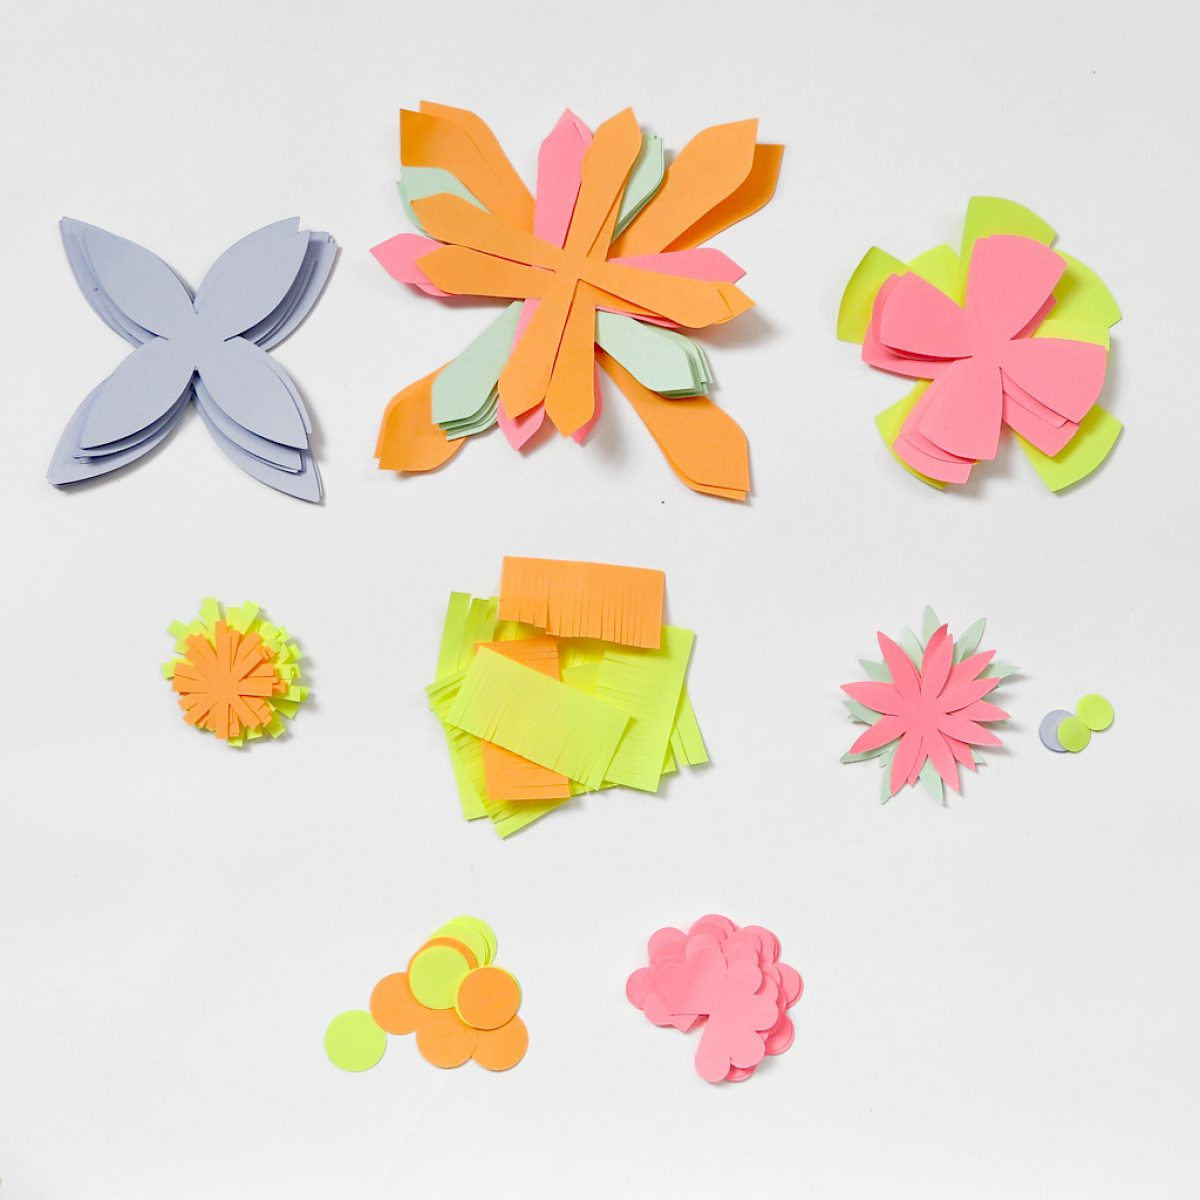 2 - CUT OUT AND SORT FLOWER COMPONENTS